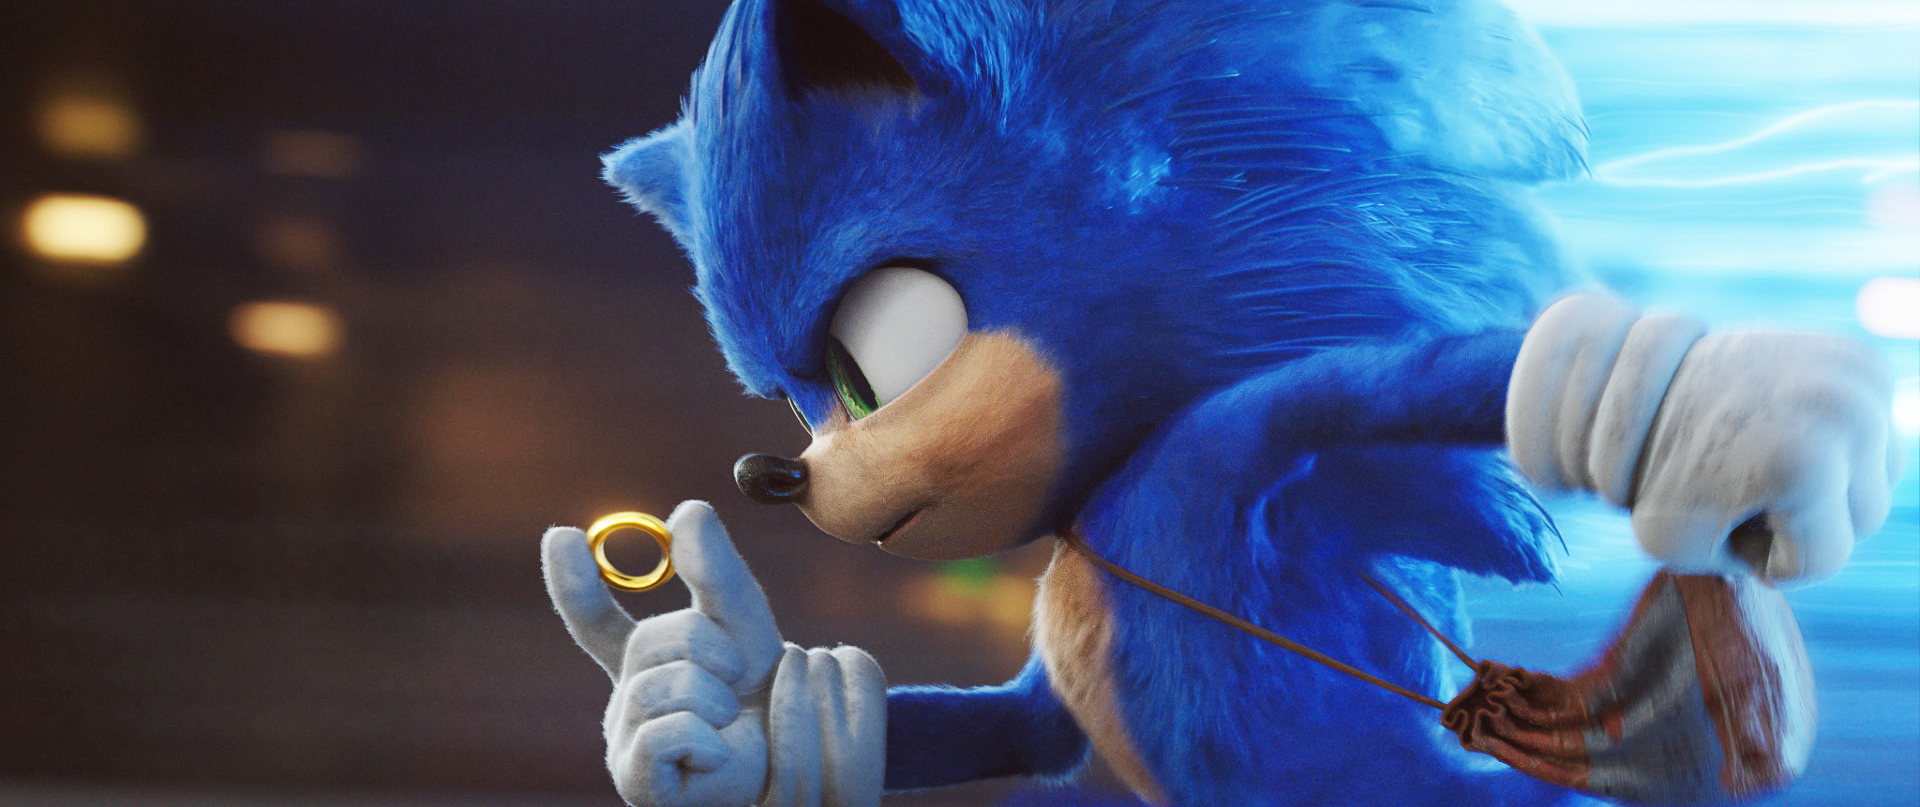 sonic holds a gold ring as he runs real fast